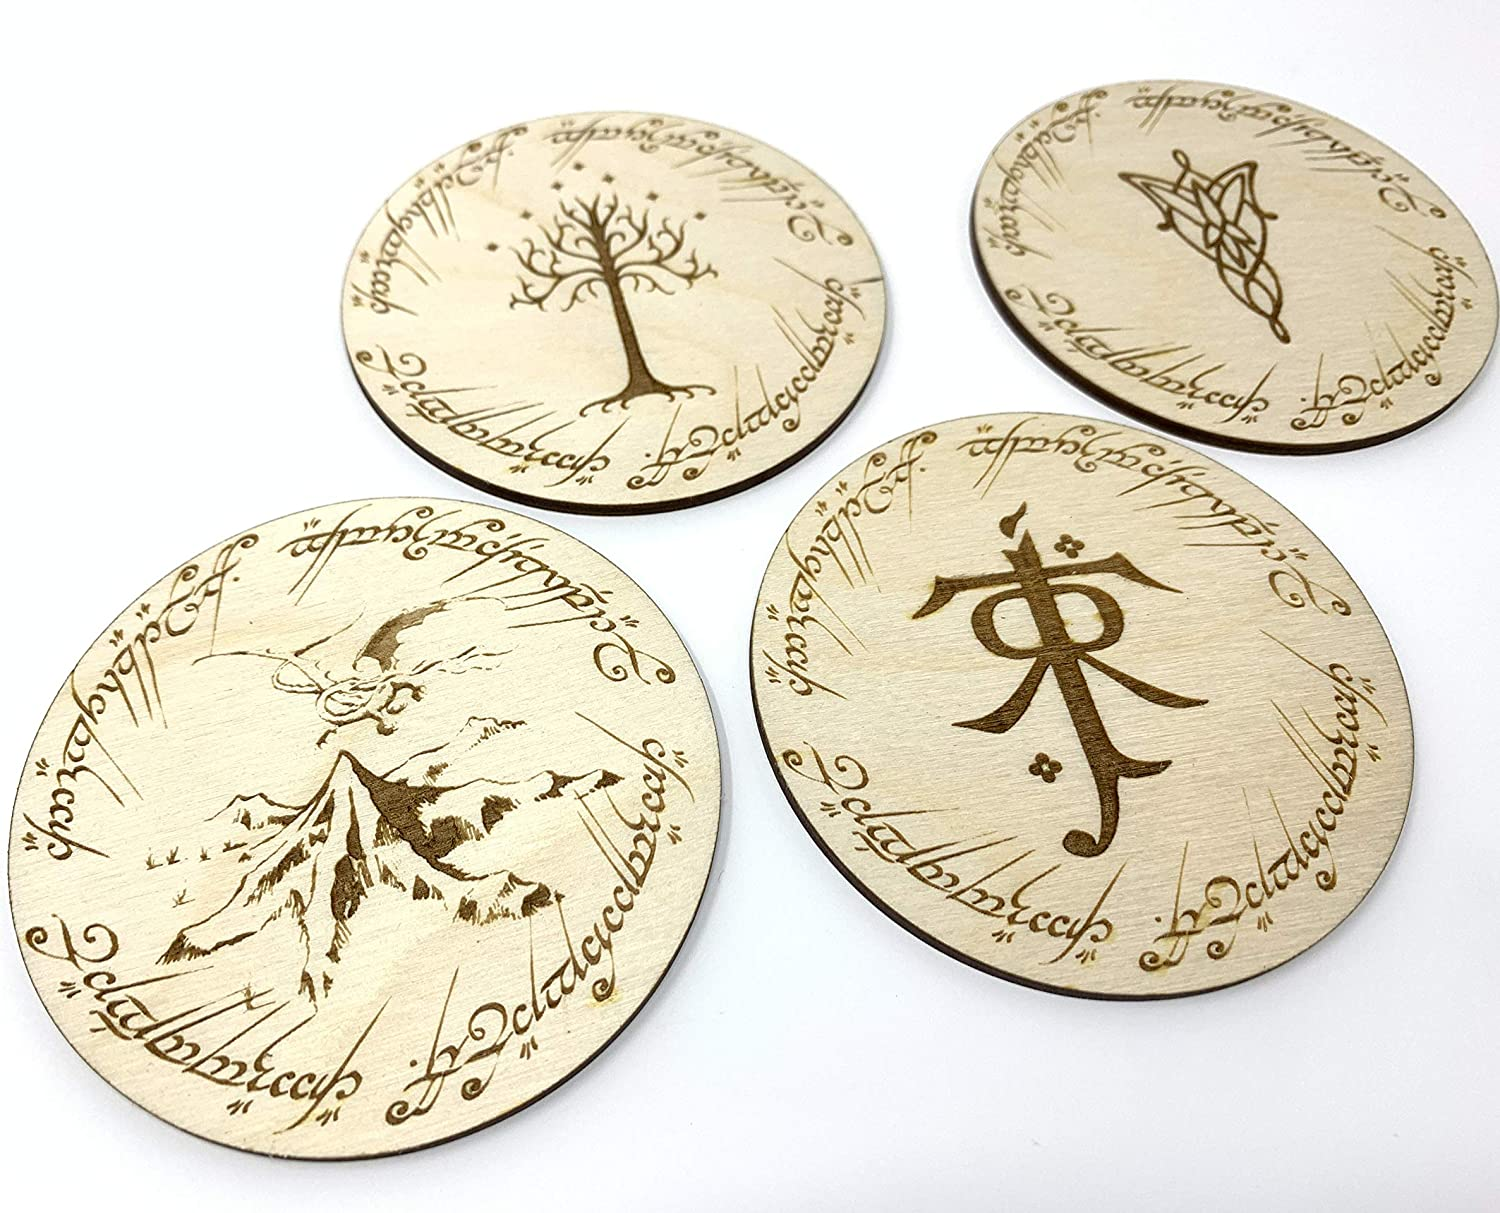 Geekilicious Art Lord of The Rings Round Coasters | Tolkien's Lord of The Rings & The Hobbit | Wood | Set of 4